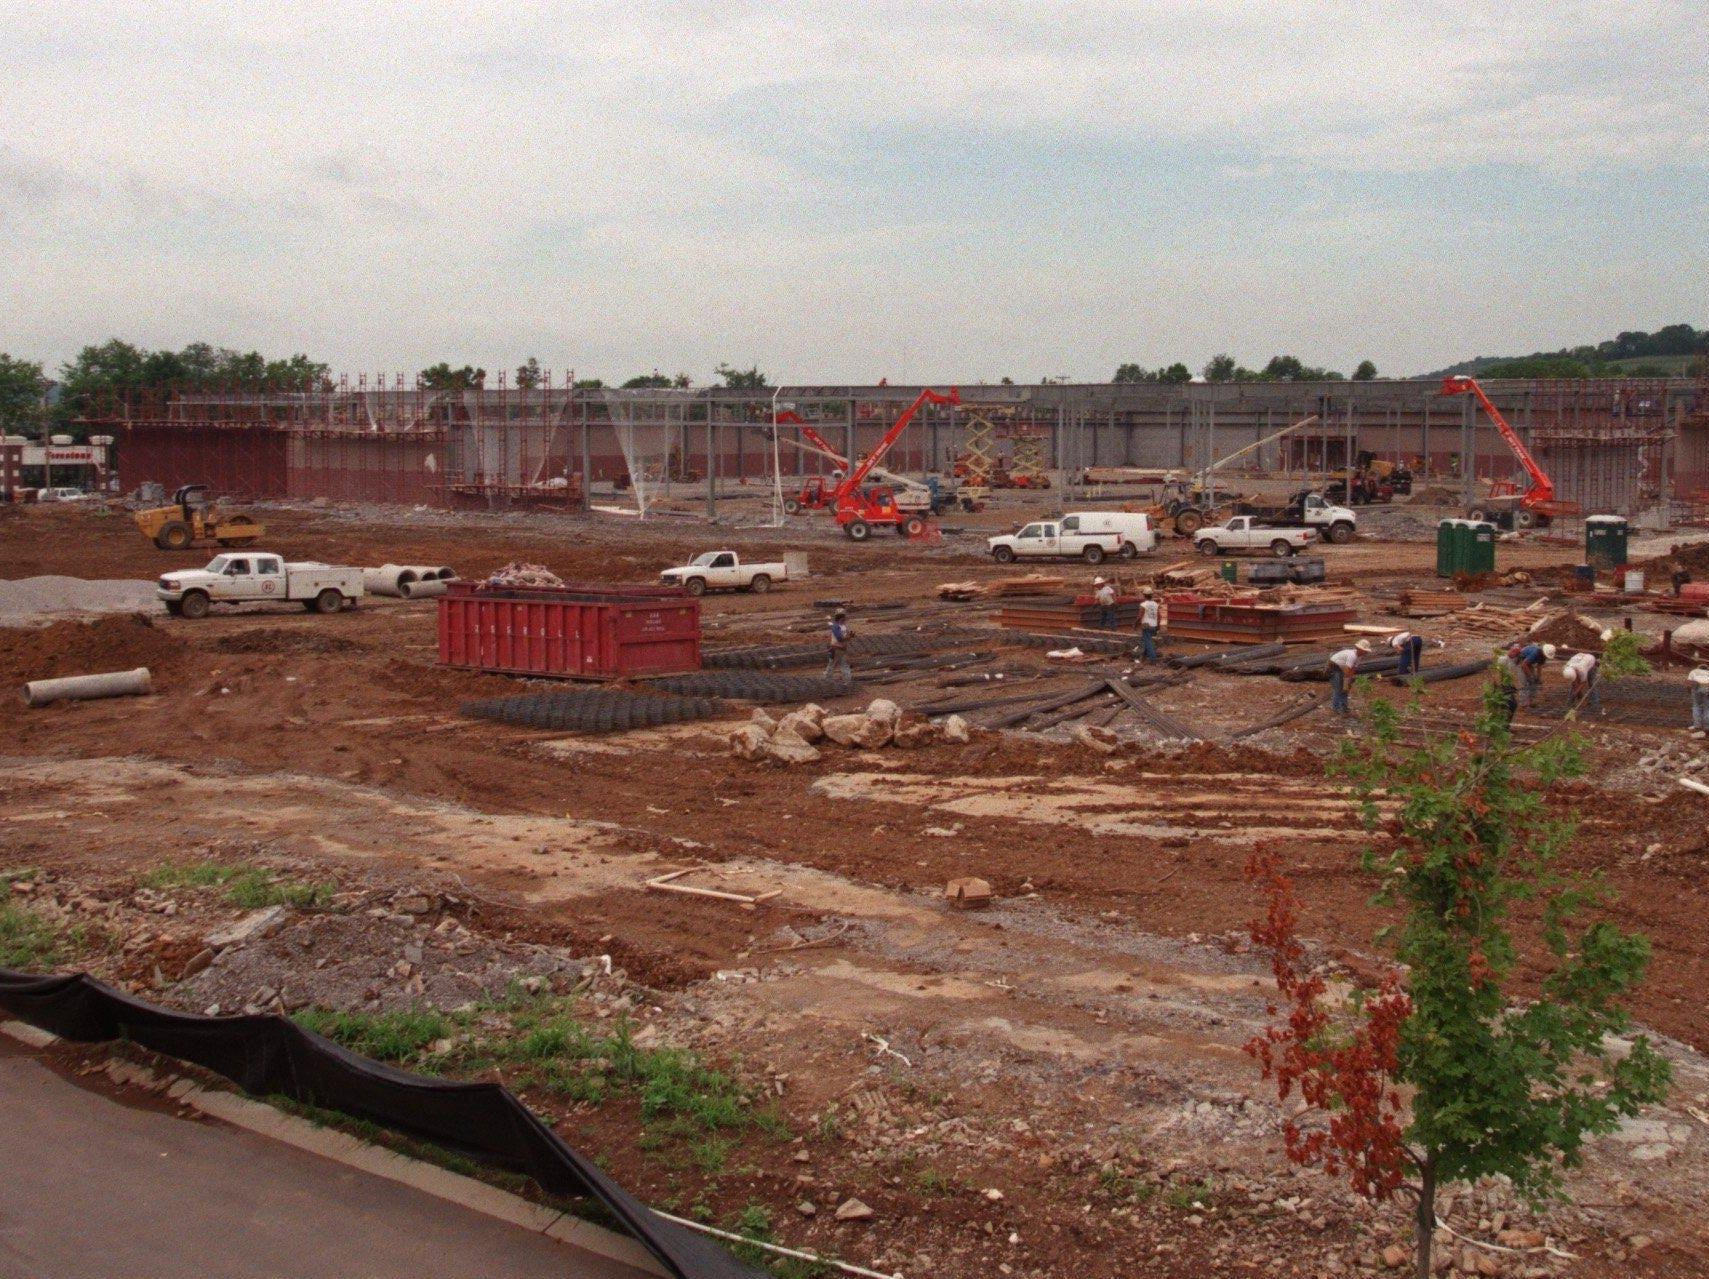 Costco under construction behind Merchant's off Mallory Lane in Franklin in 1996.